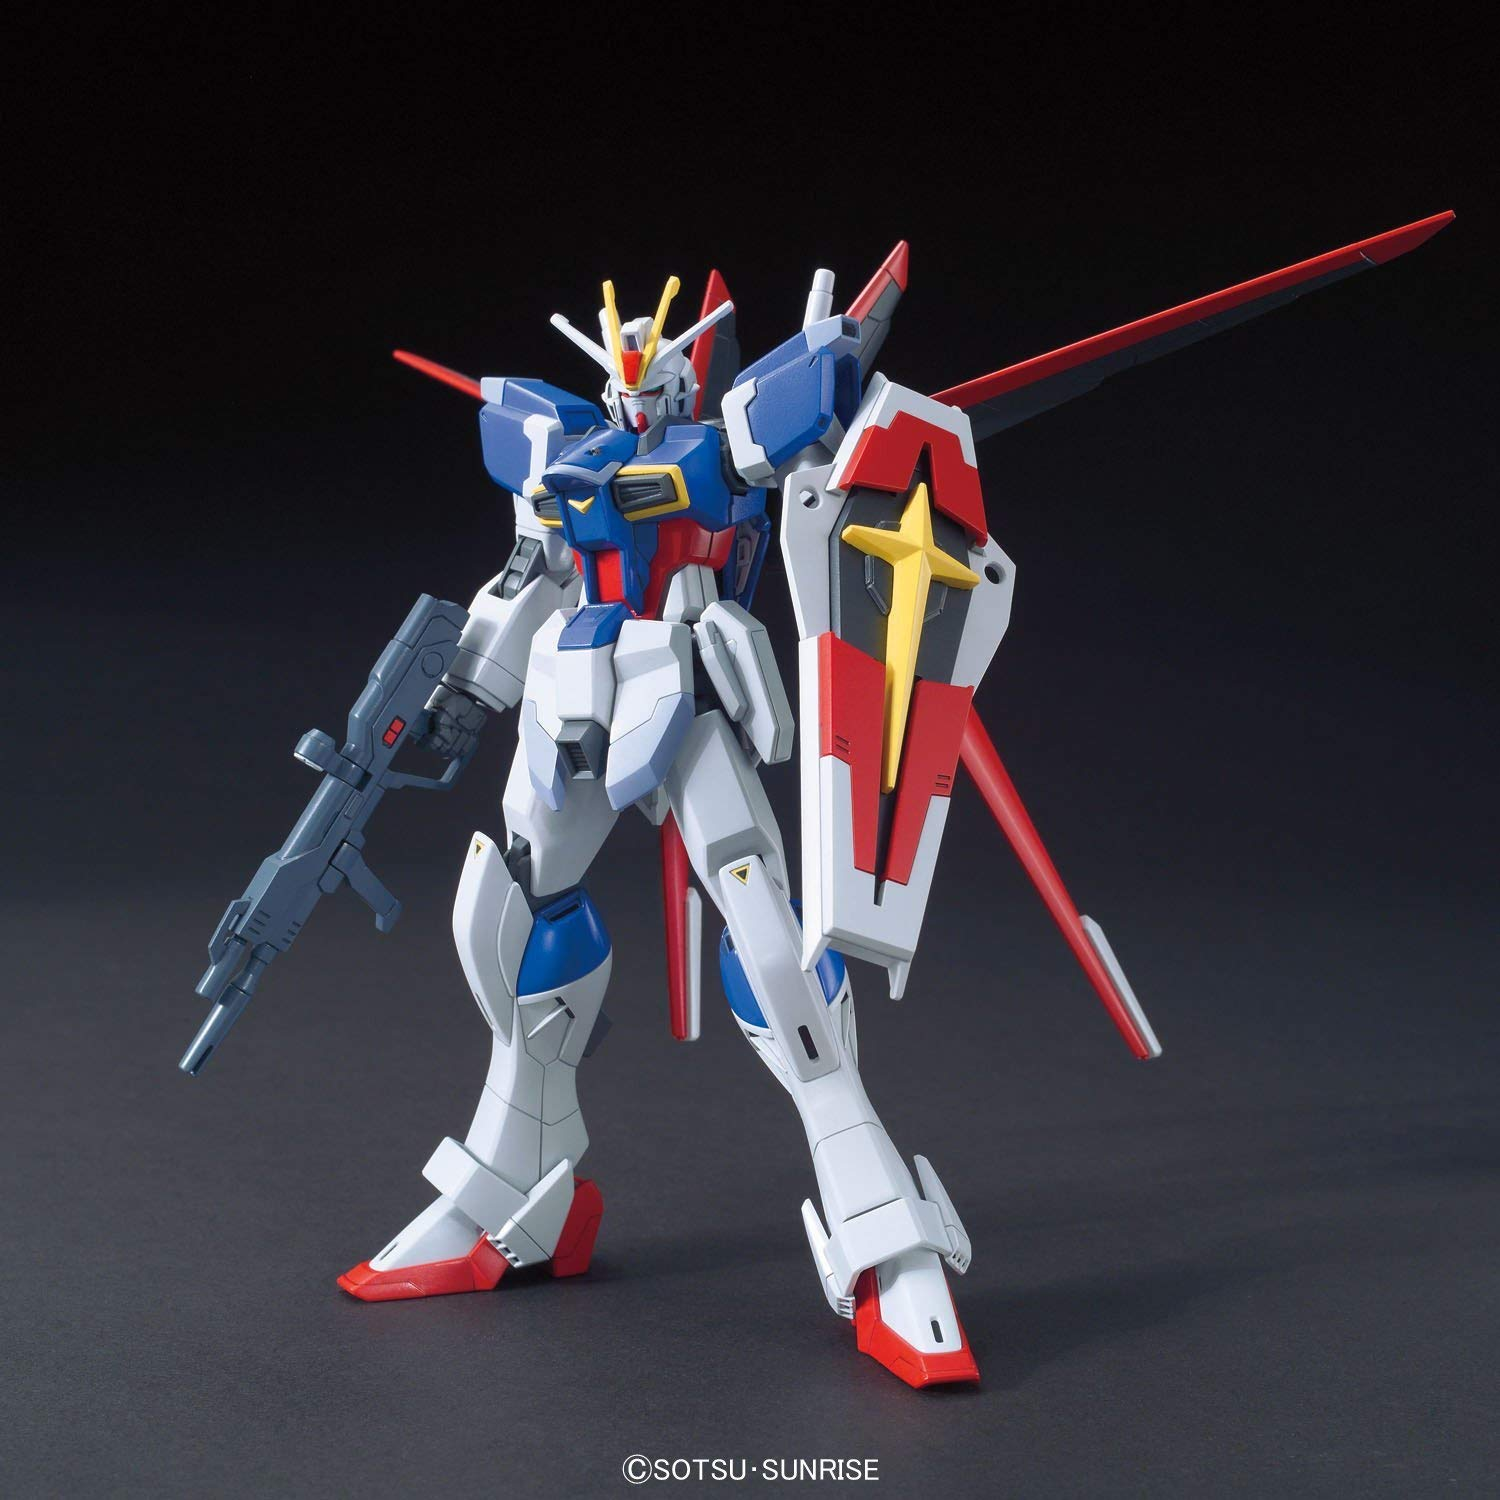 25259HGCE 198 REVIVE 1/144 ZGMF-X56S/α フォースインパルスガンダム [Force Impulse Gundam]